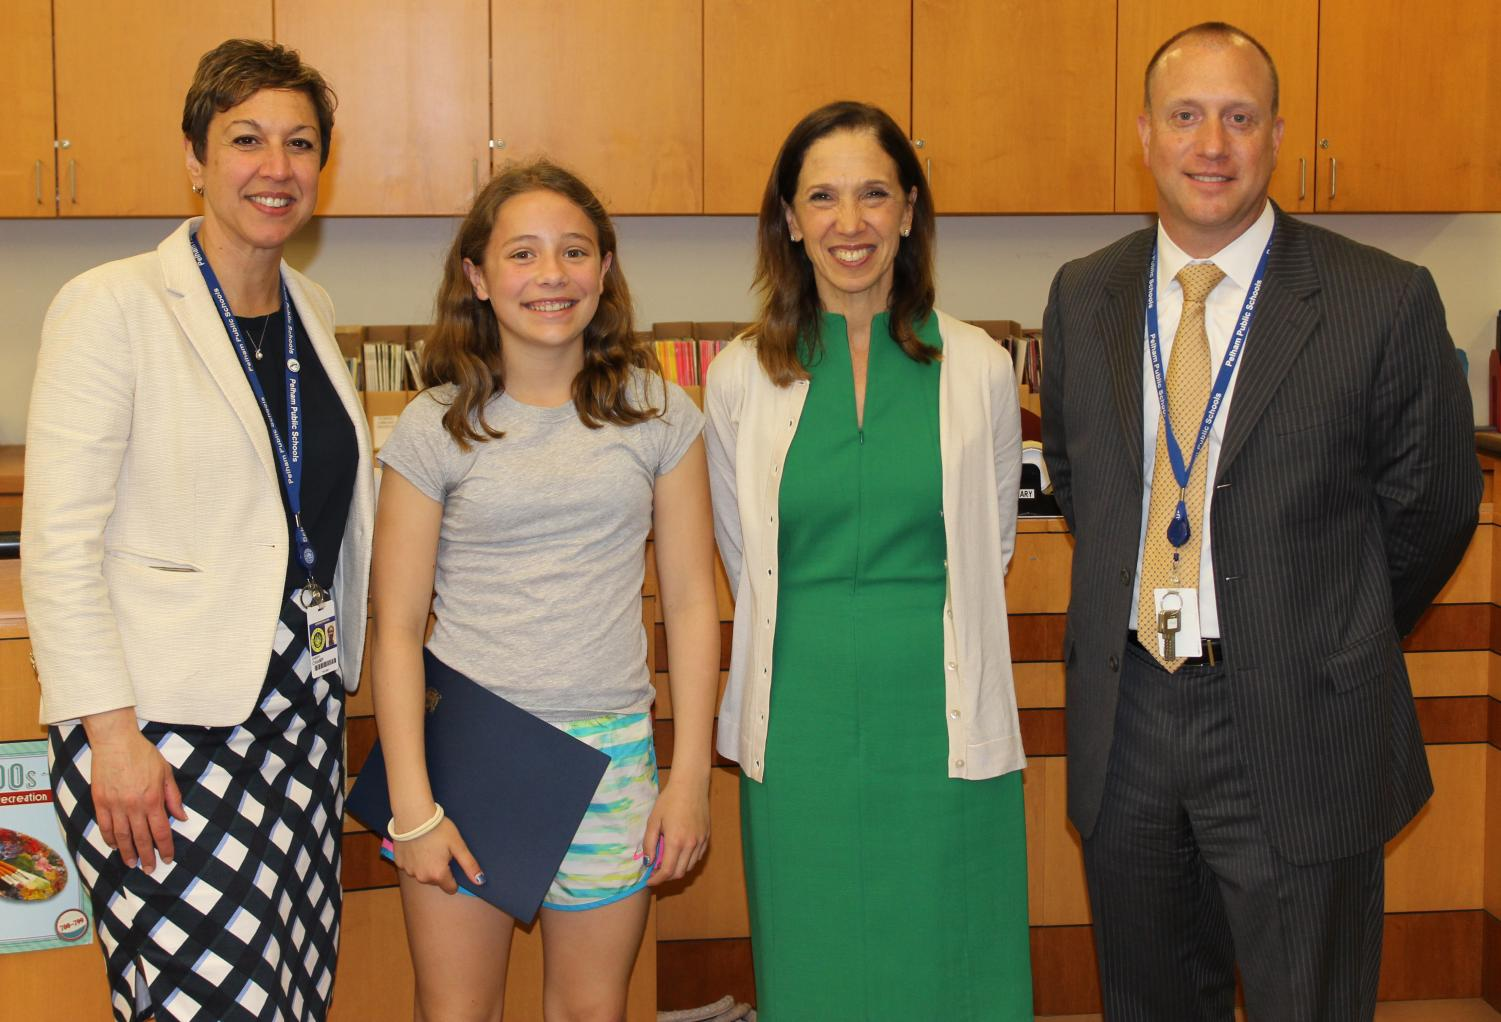 From left, Superintendent Cheryl Champ, Leila Brady (a winner last year), Assemblywoman Amy Paulin and former PMS Principal Dr. Robert Roelle.